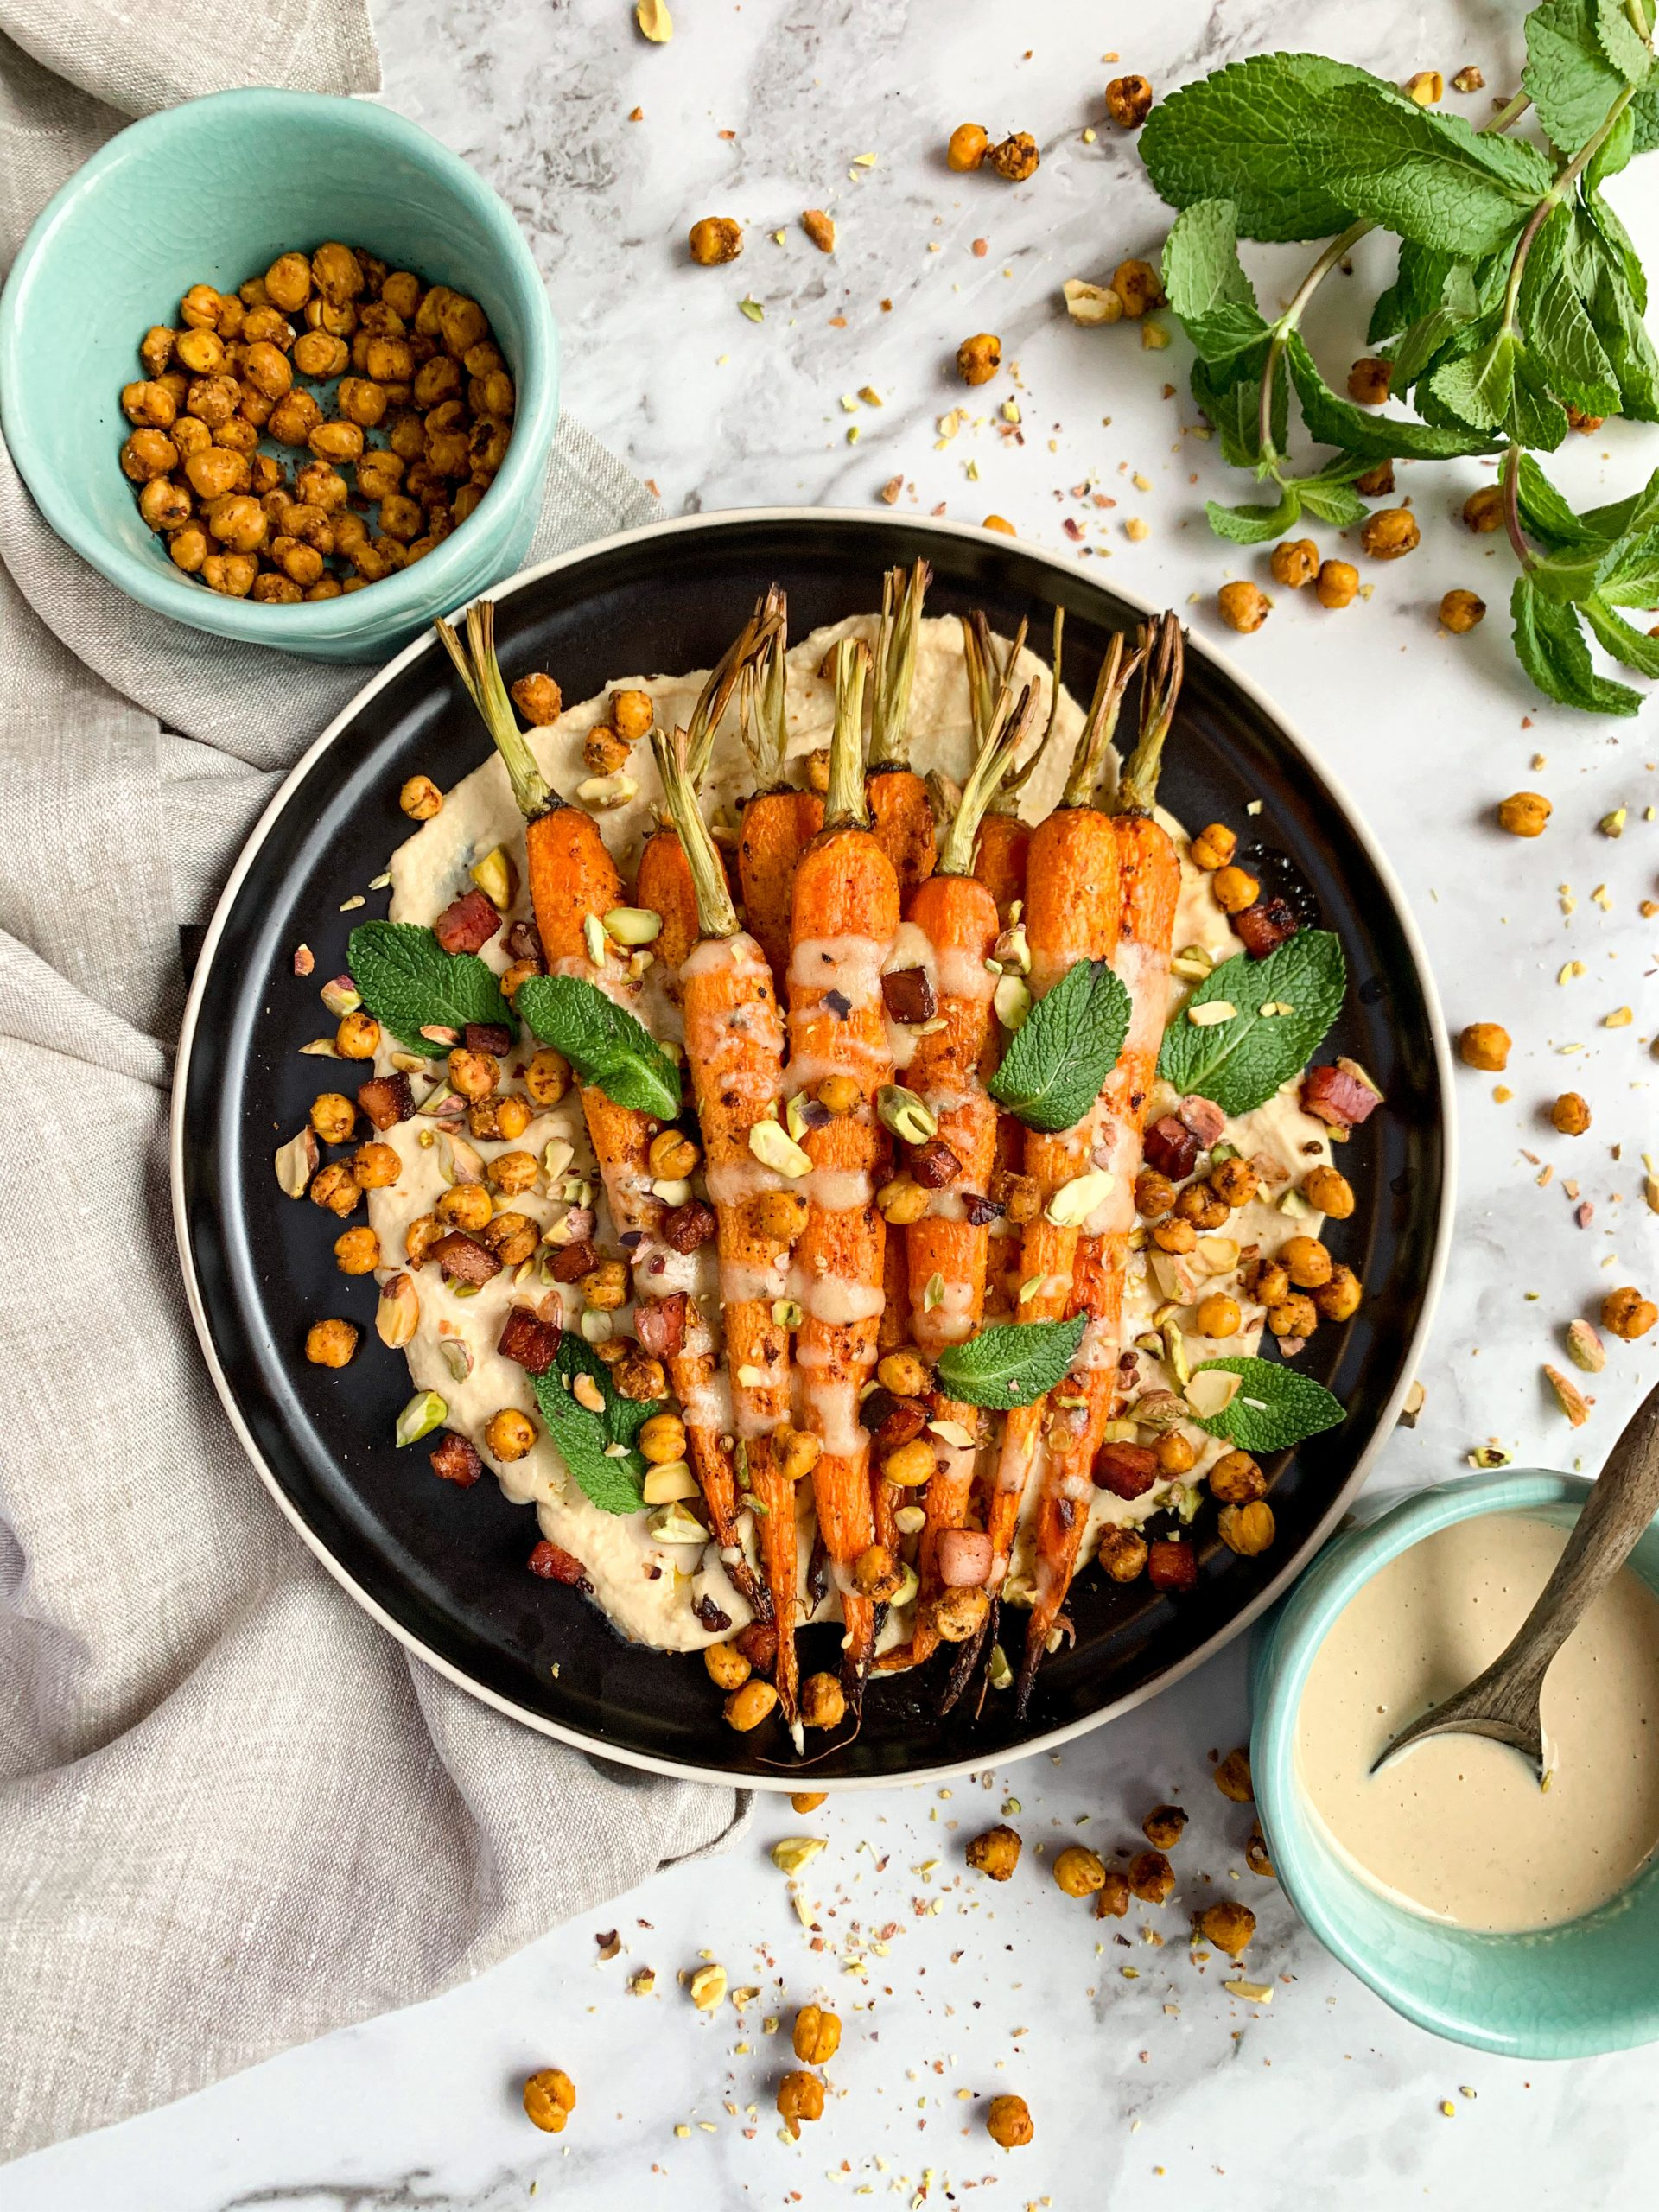 Roasted Carrots over a bed of hummus and crispy chickpeas